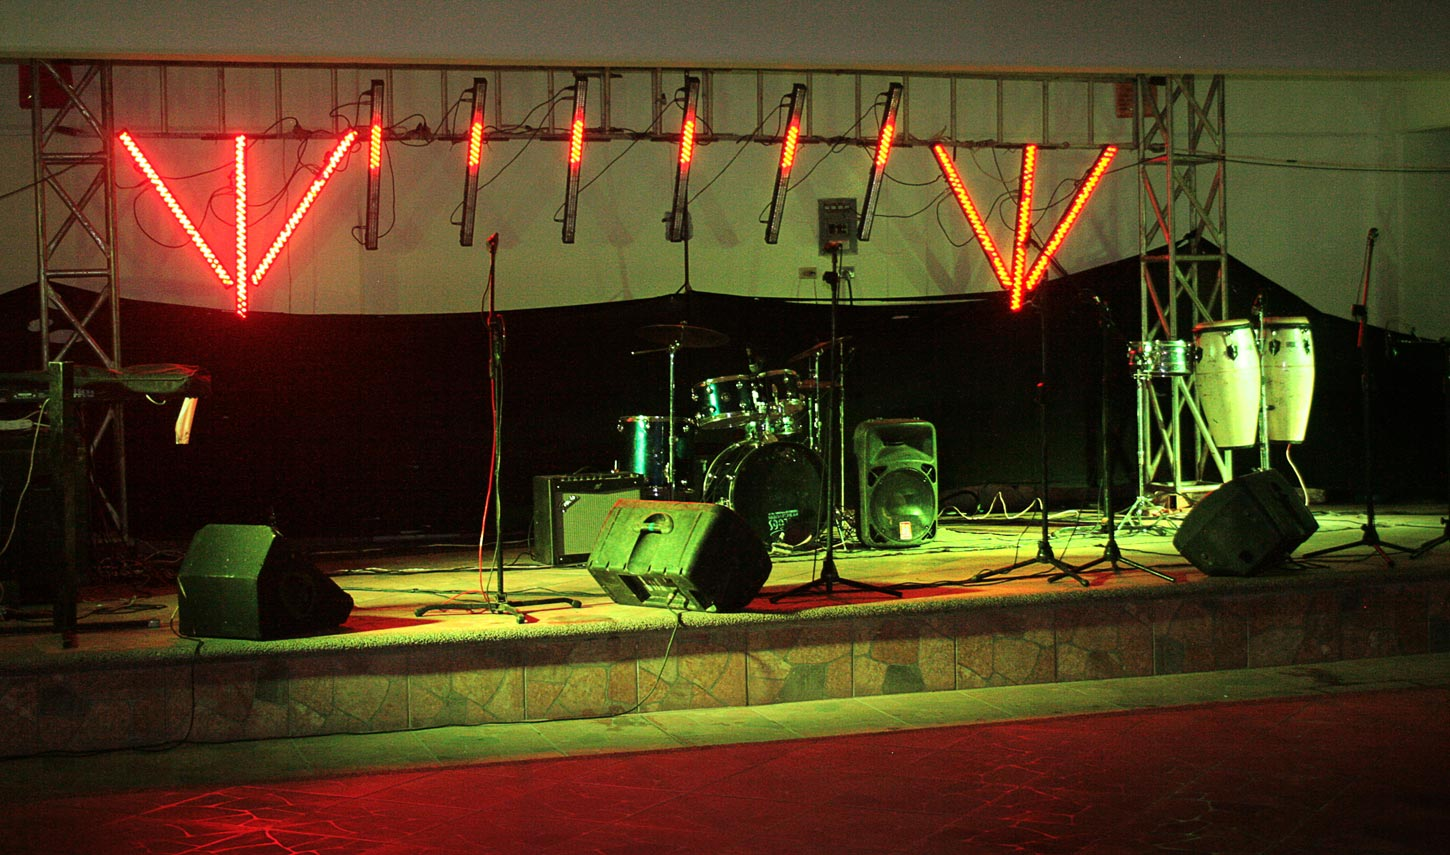 salon_eventos_quintaflor_slide5